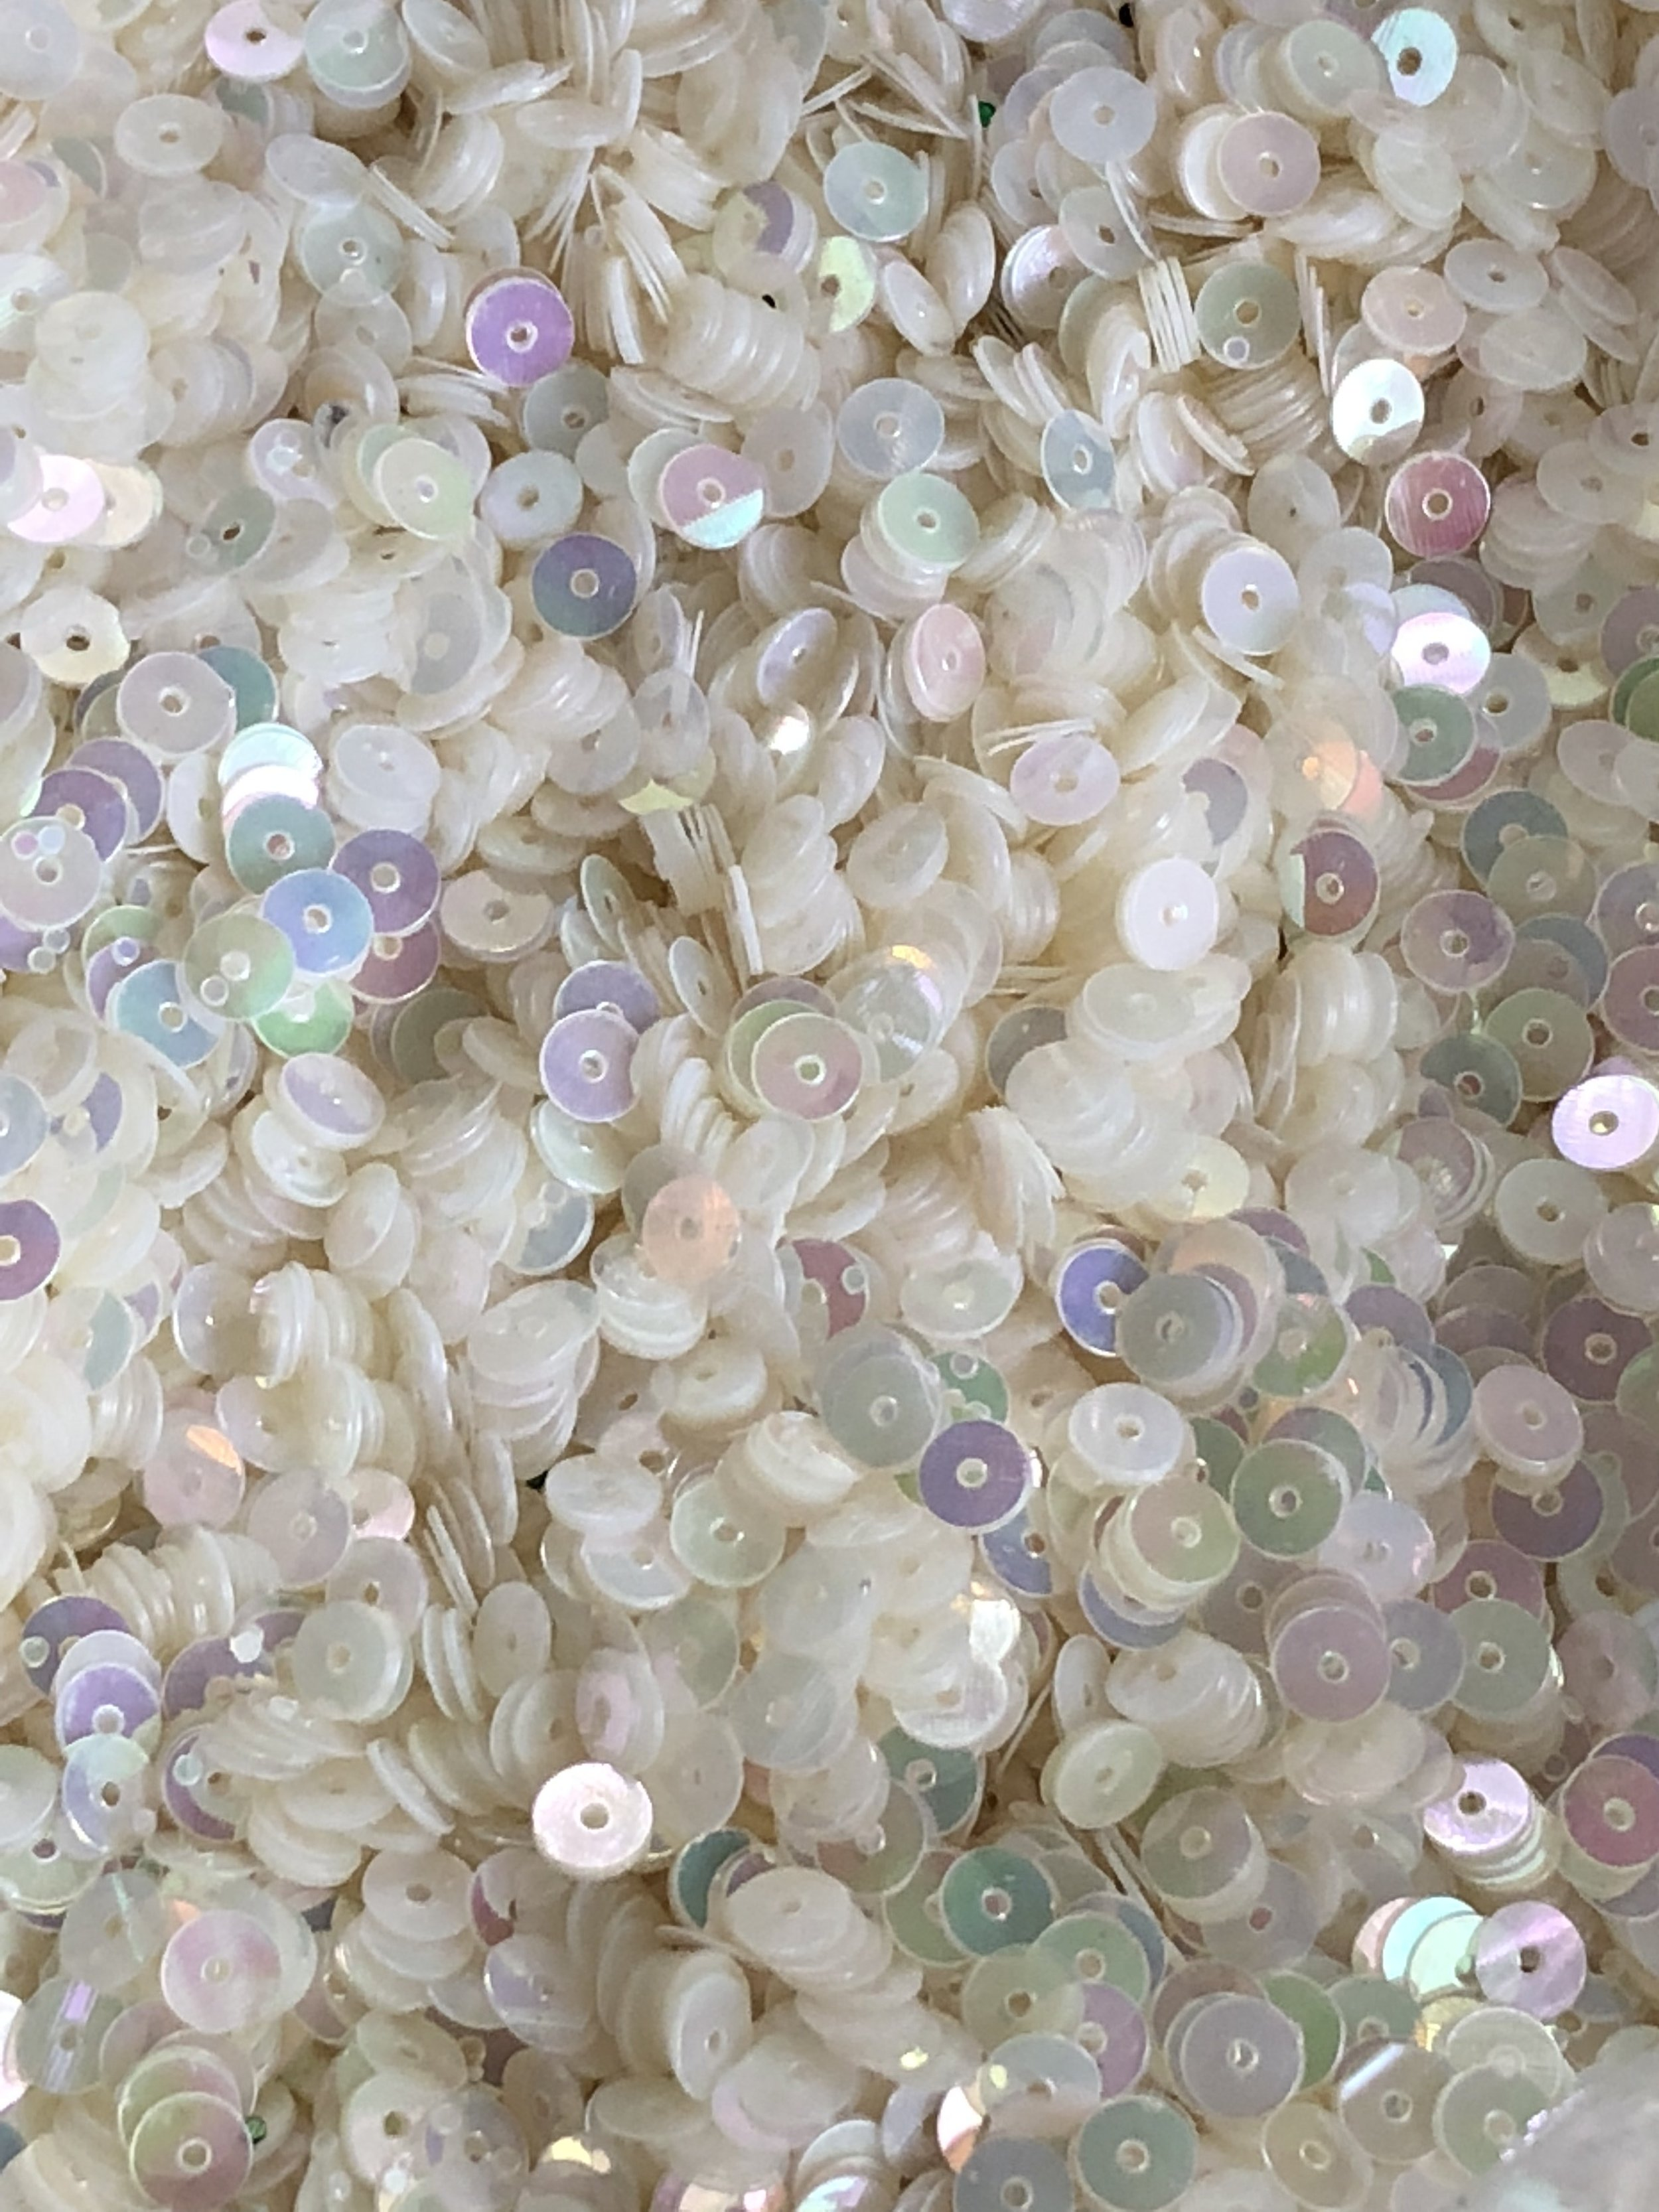 5mm Flat SequinsIridescent Clear White - Bulk Loose Sequins (1/4 Pound)